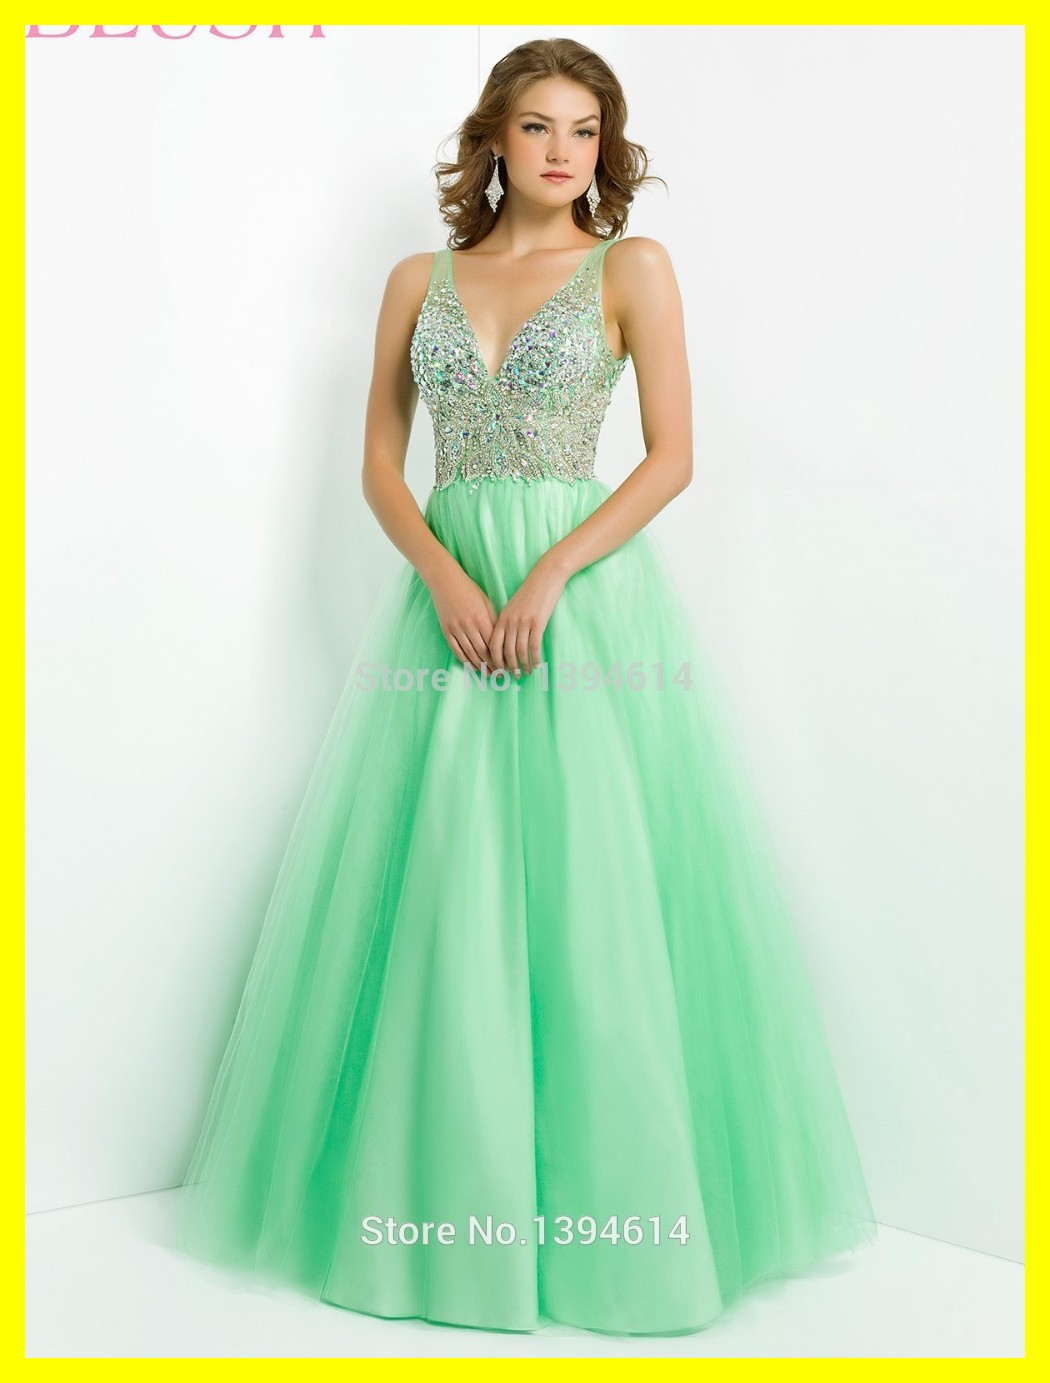 Distinctive Bra Crystal 2015 Free Prom Dresses From Prom Dresses Kids Used Dress Red Boutique Make Your Own Ball Gown Length None Built Kids Used Dress Red Boutique Make Your Own Ball Prom Dresses wedding dress Used Prom Dresses